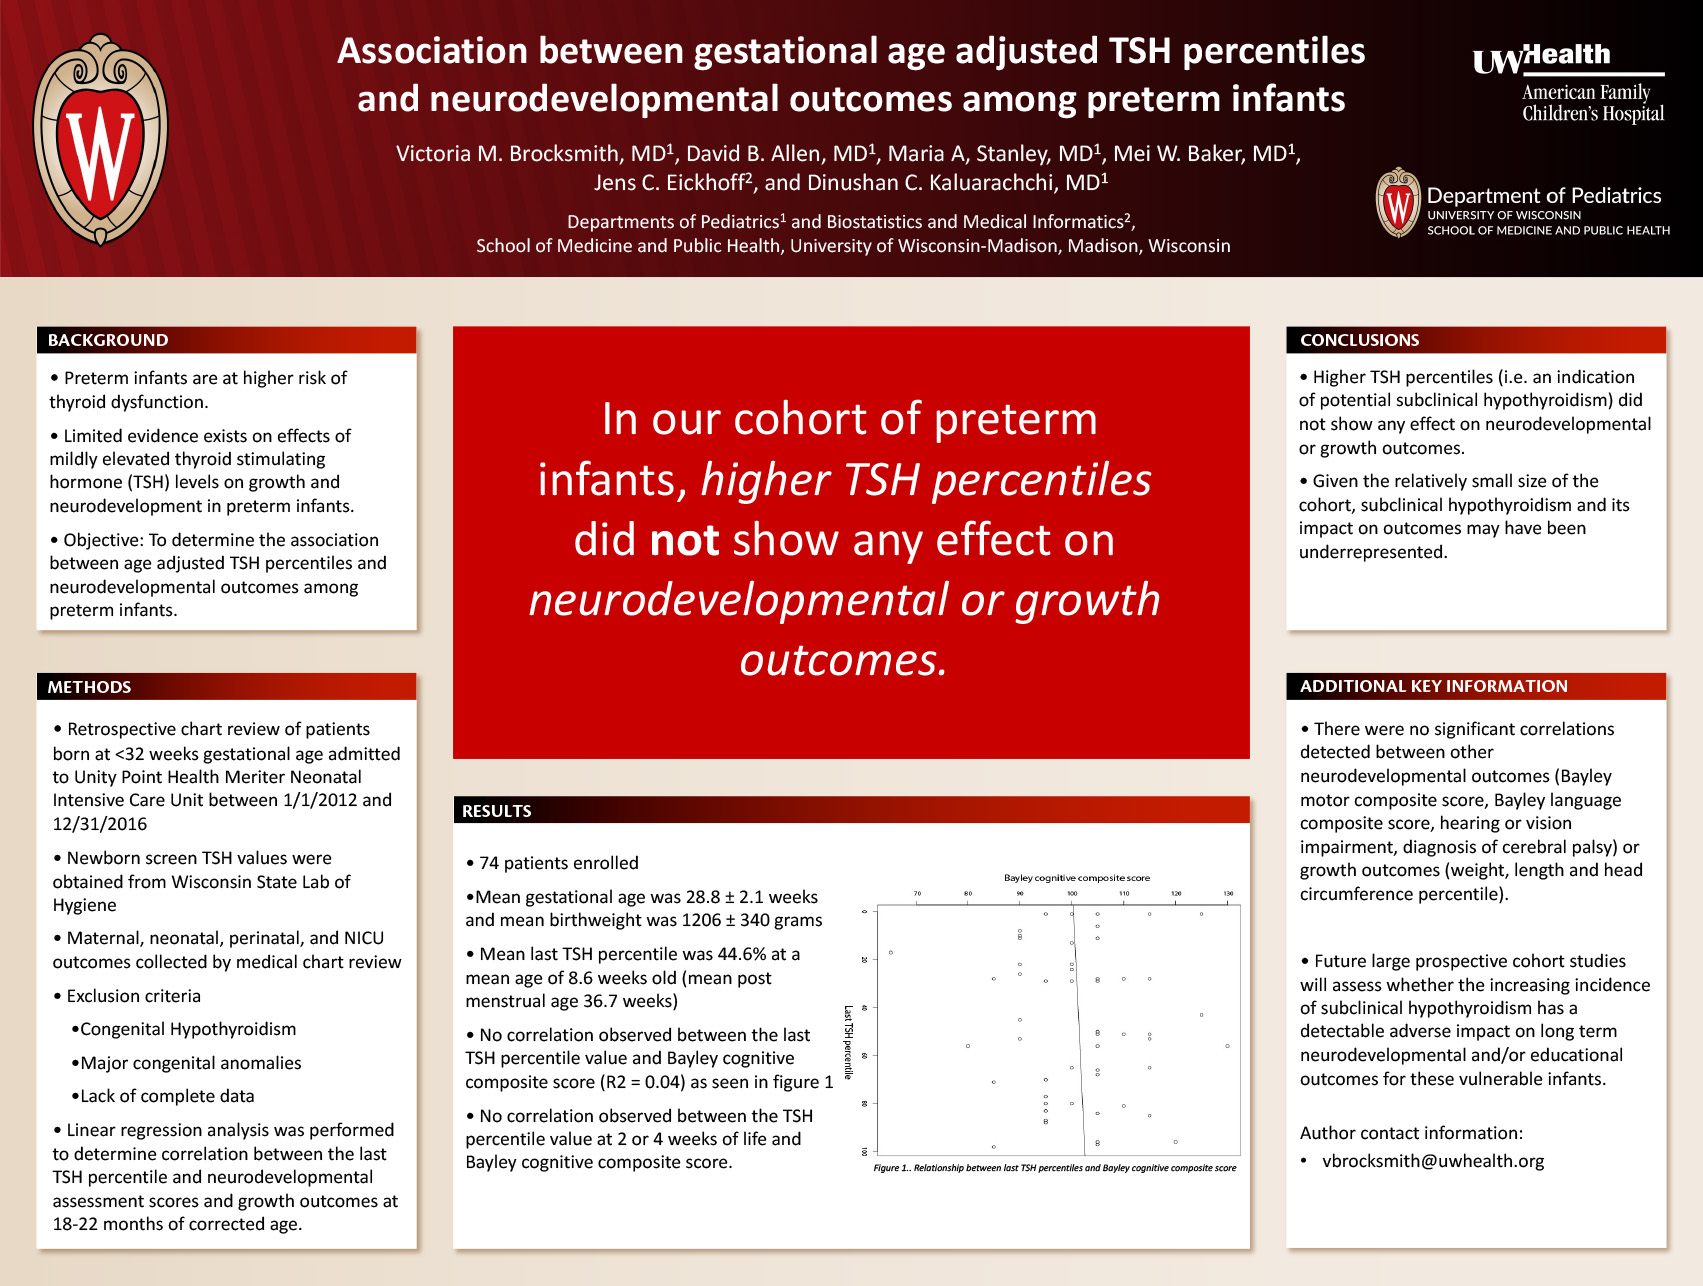 Association between gestational age adjusted TSH percentiles and neurodevelopmental outcomes among preterm infants poster image